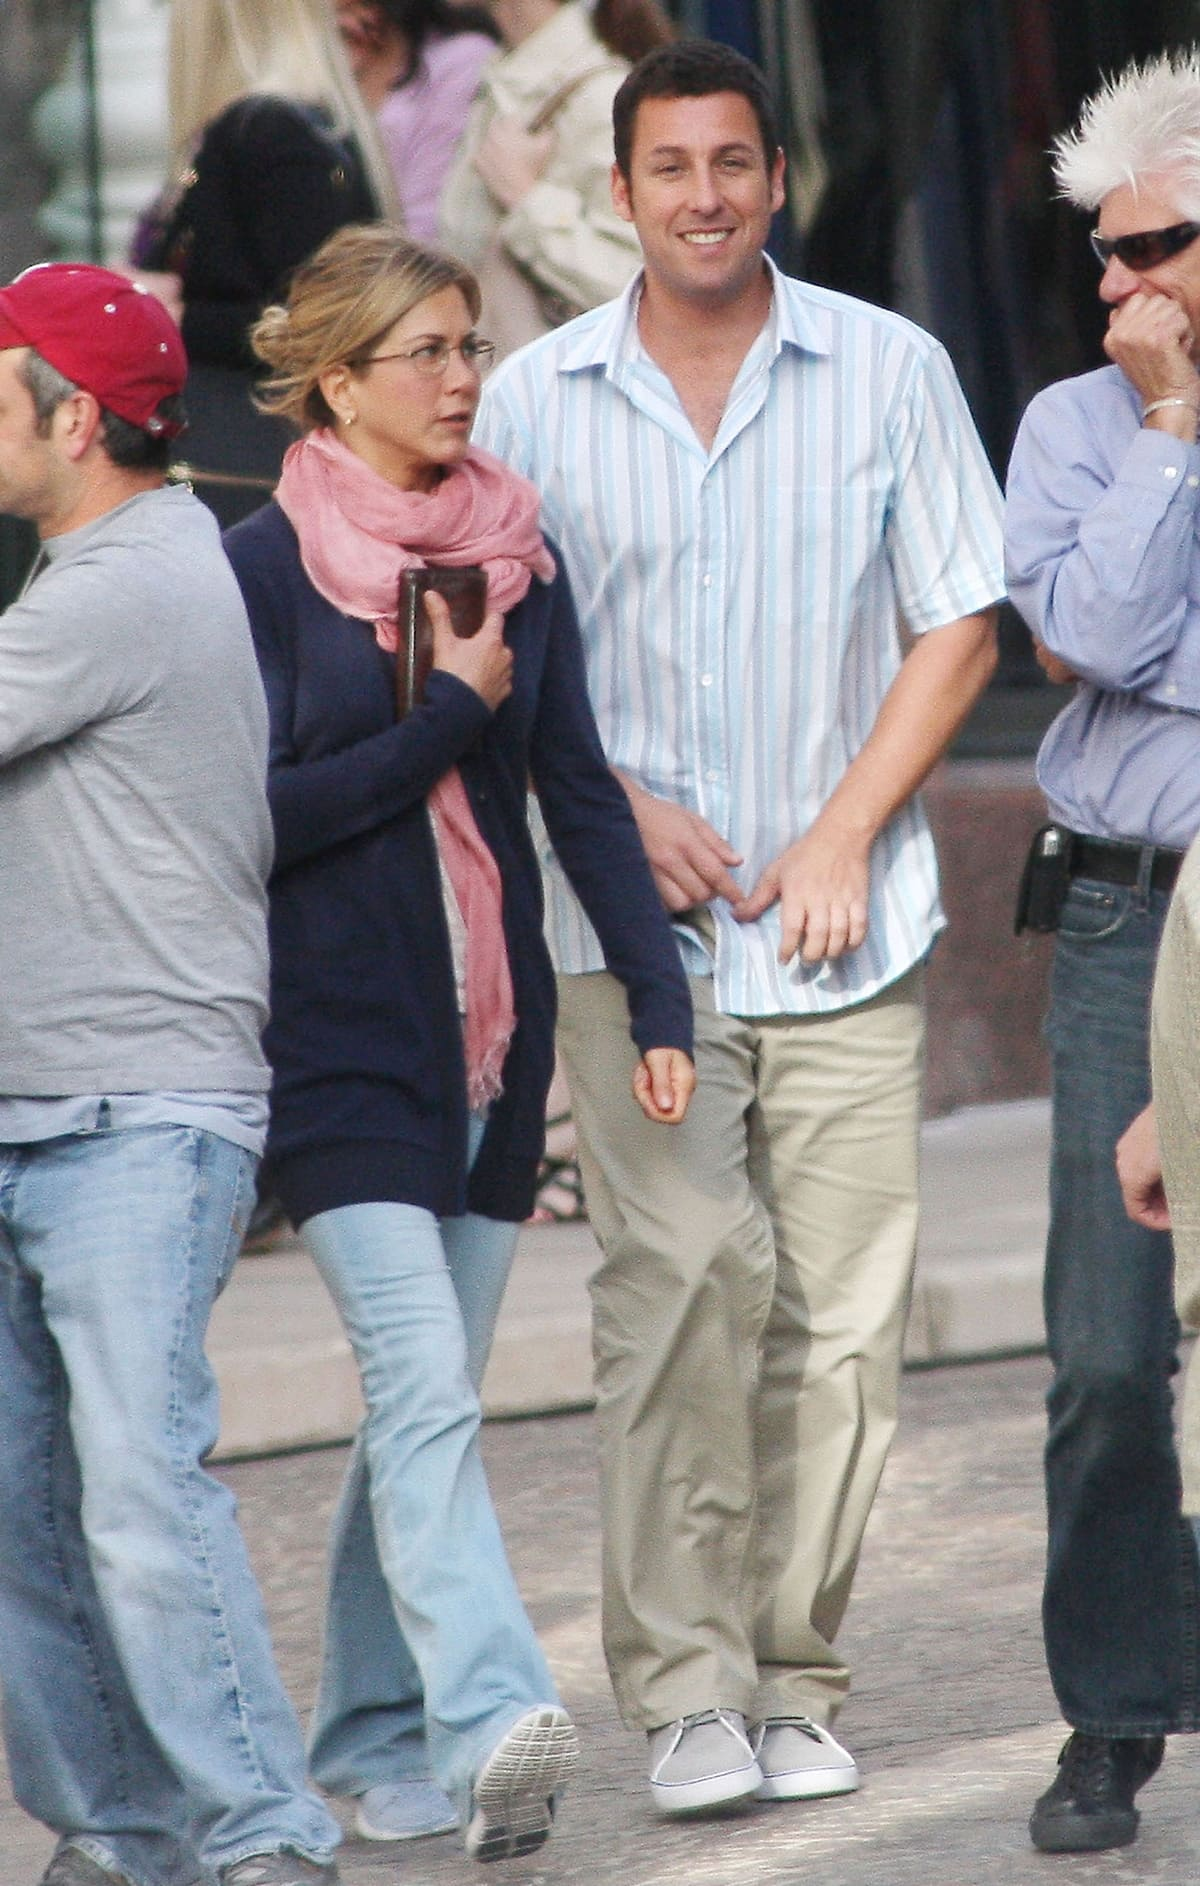 Jennifer Aniston and Adam Sandler filming their new movie 'Just Go With It' on Rodeo Drive